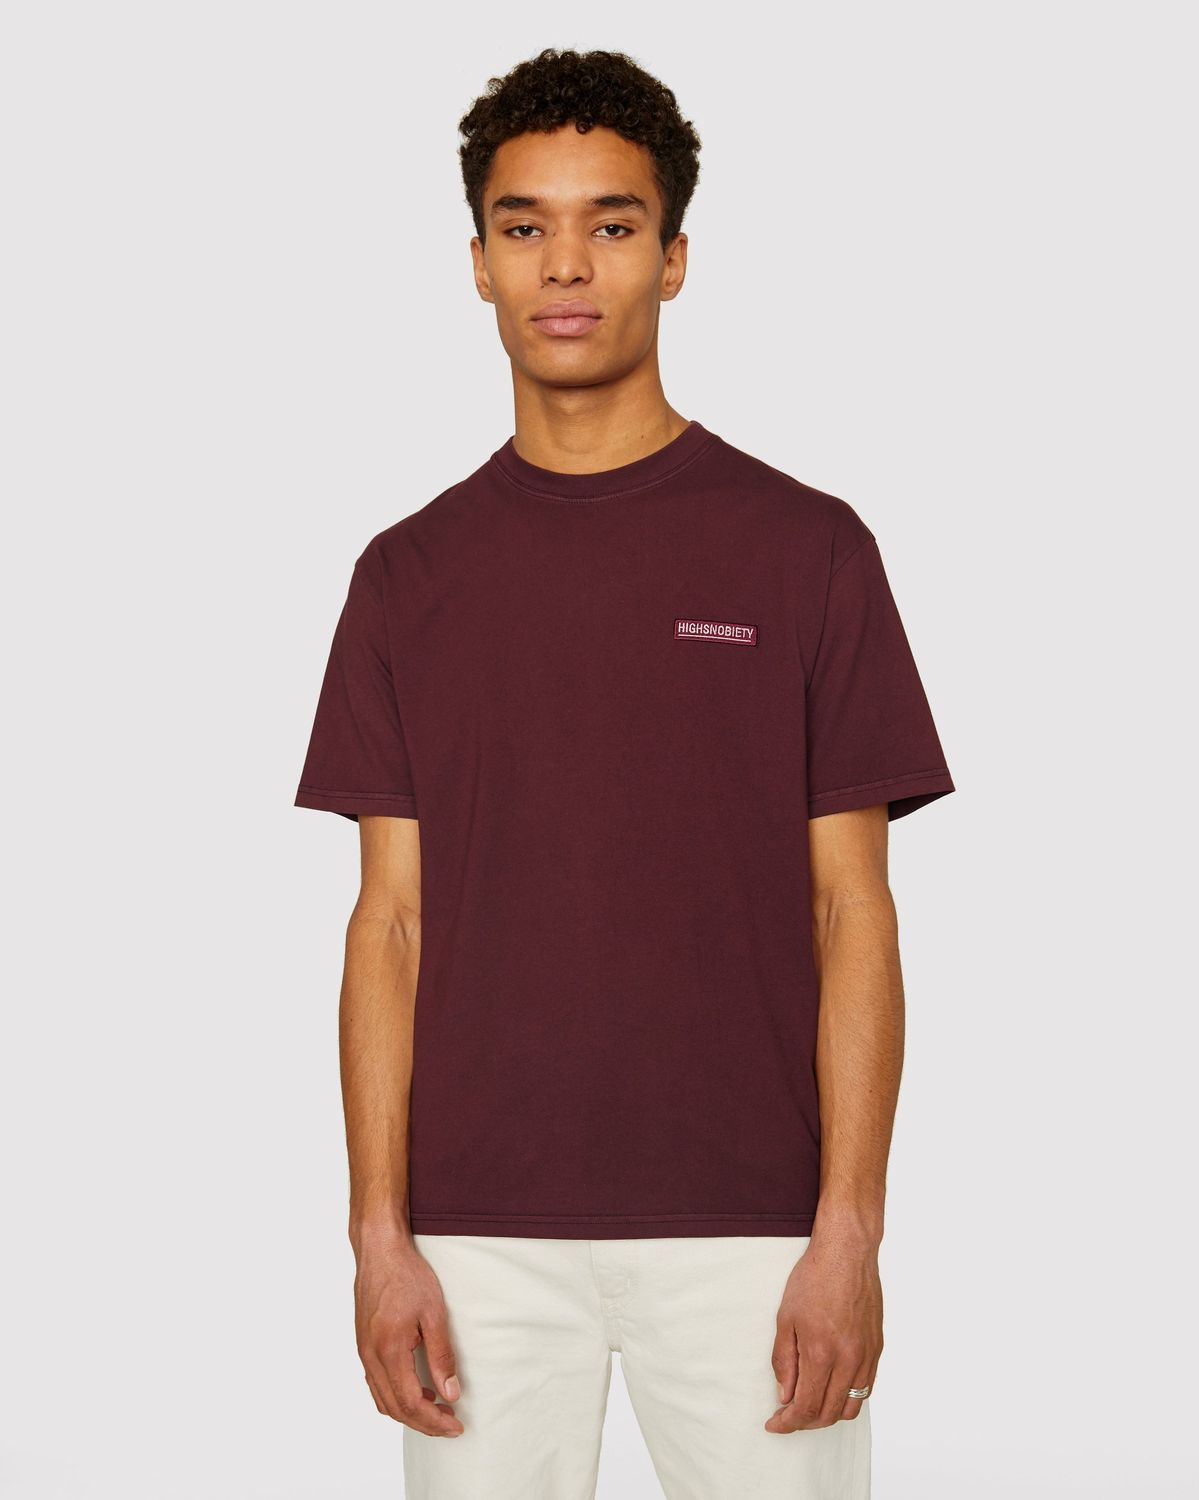 Highsnobiety Staples — T-Shirt Burgundy - Image 2